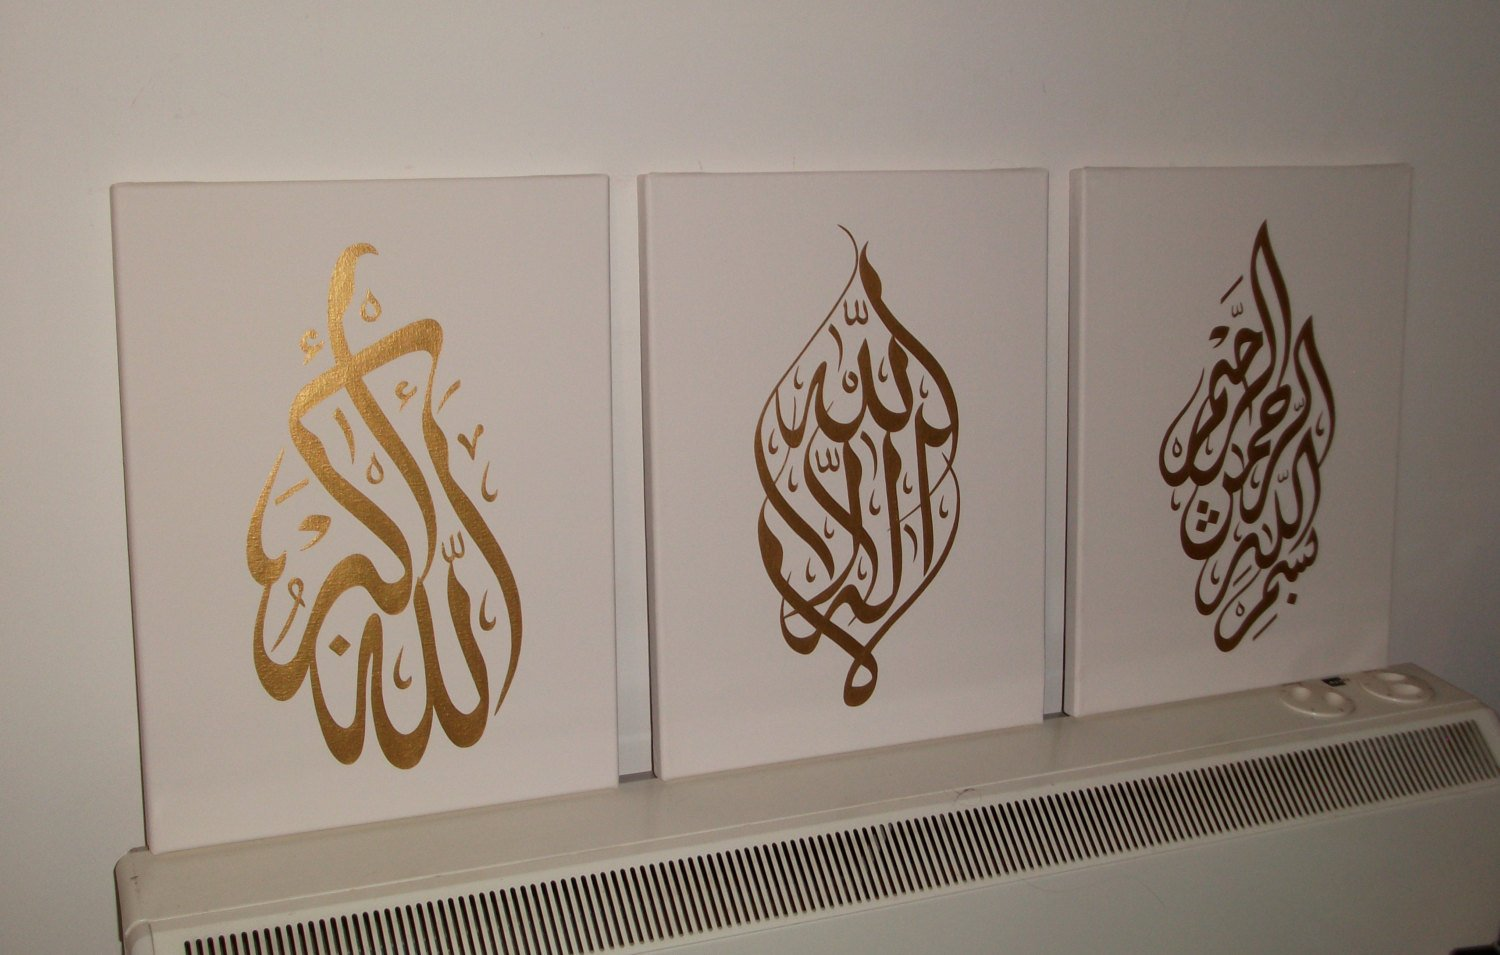 Arabic Calligraphy Islamic Handmade Pictures Wall Art Oil Paintings On  Canvas 3 Pcs For Living Room Home Decorations Wooden Framed (Beige Gold):  ... Part 69